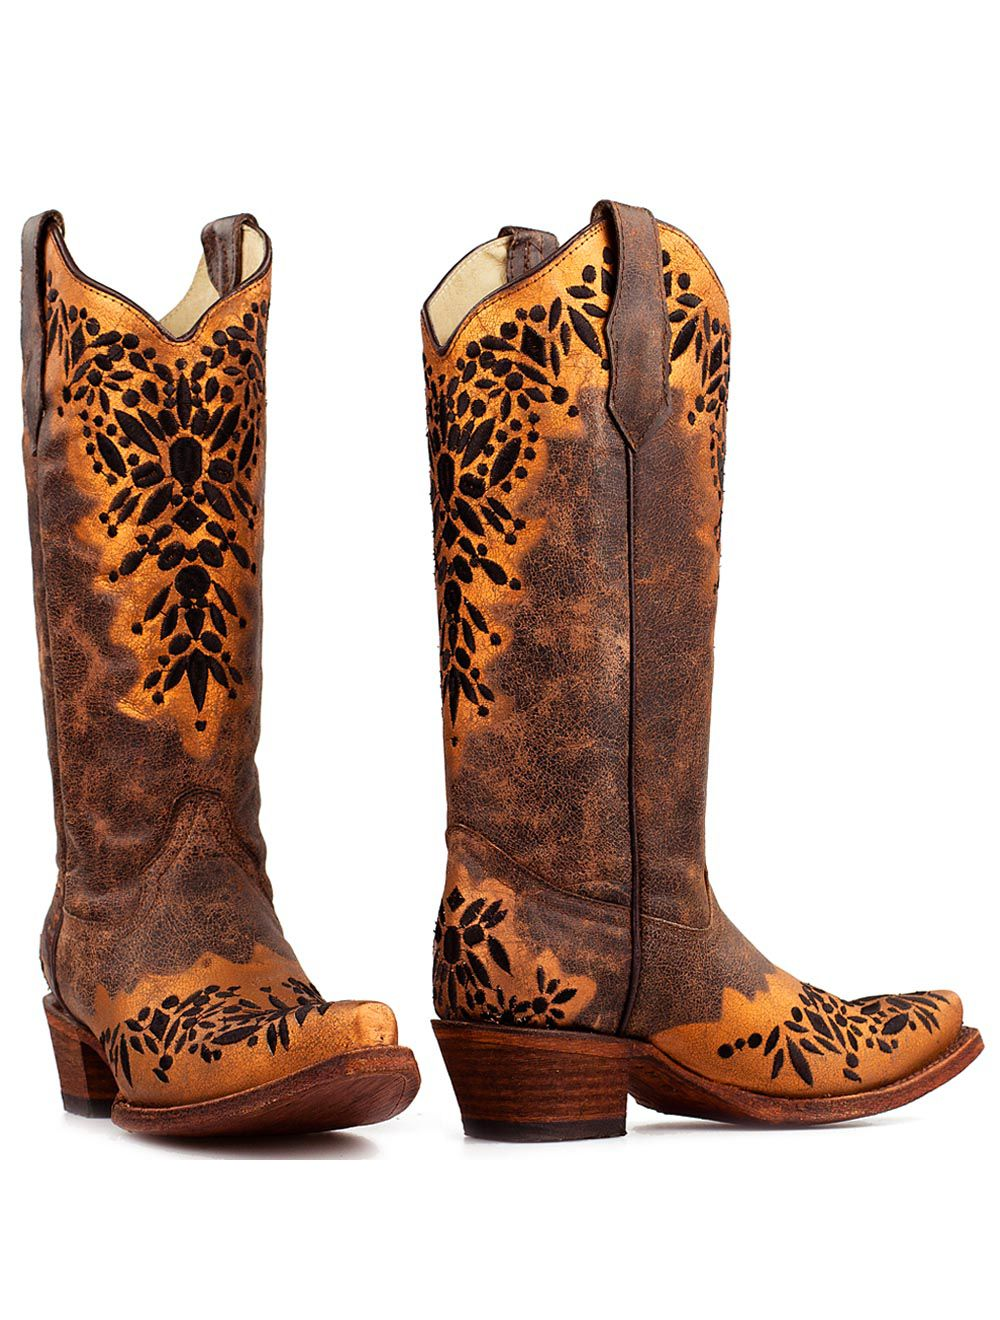 Corral donker bruine boots